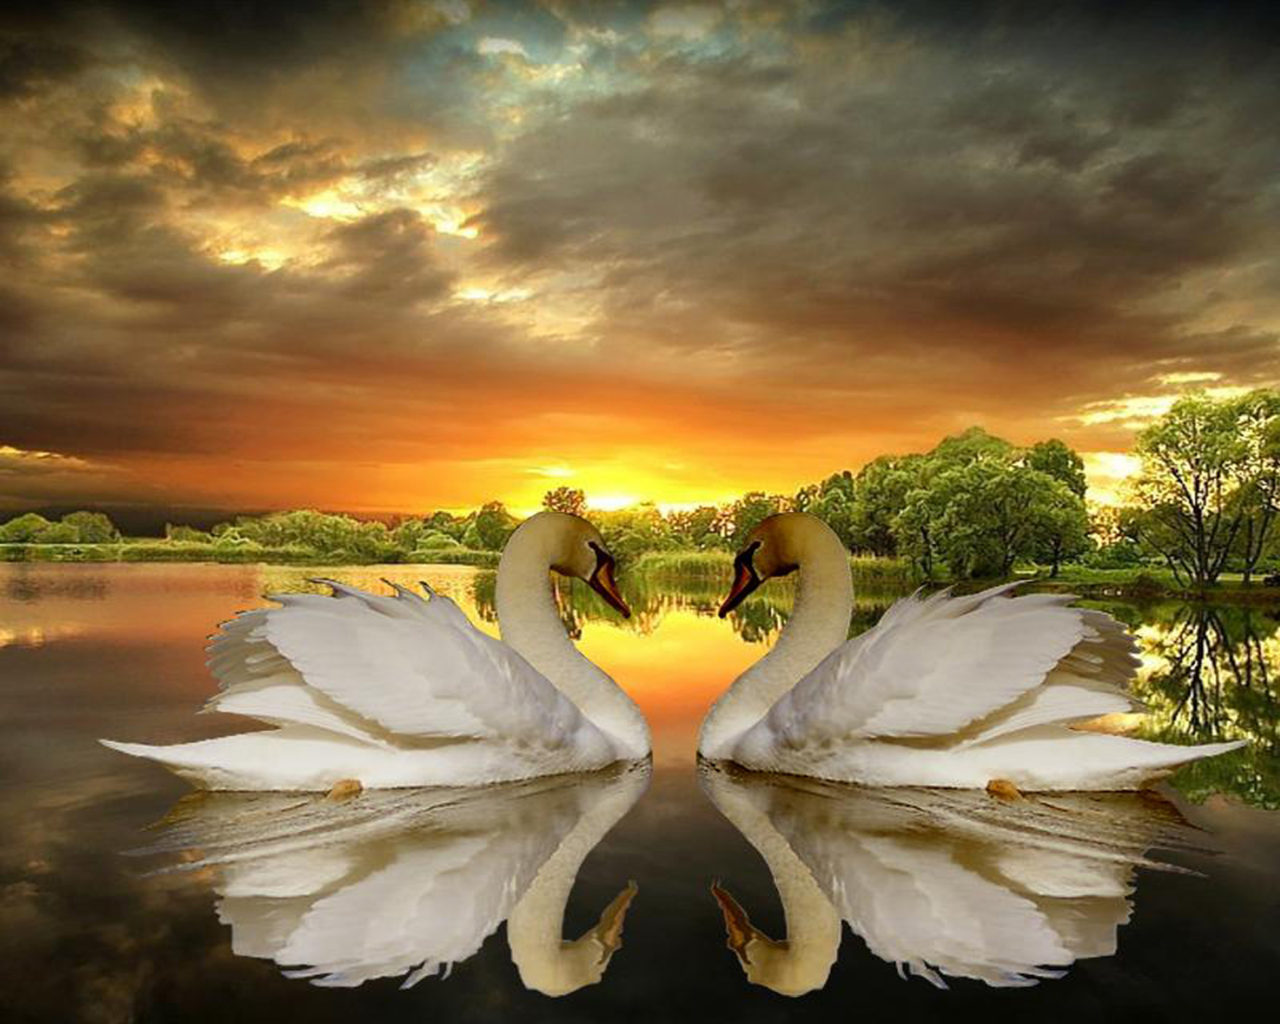 Download Wallpapers Of Couples With Quotes Love Of Swans Lake Trees Dark Clouds Sunset Desktop